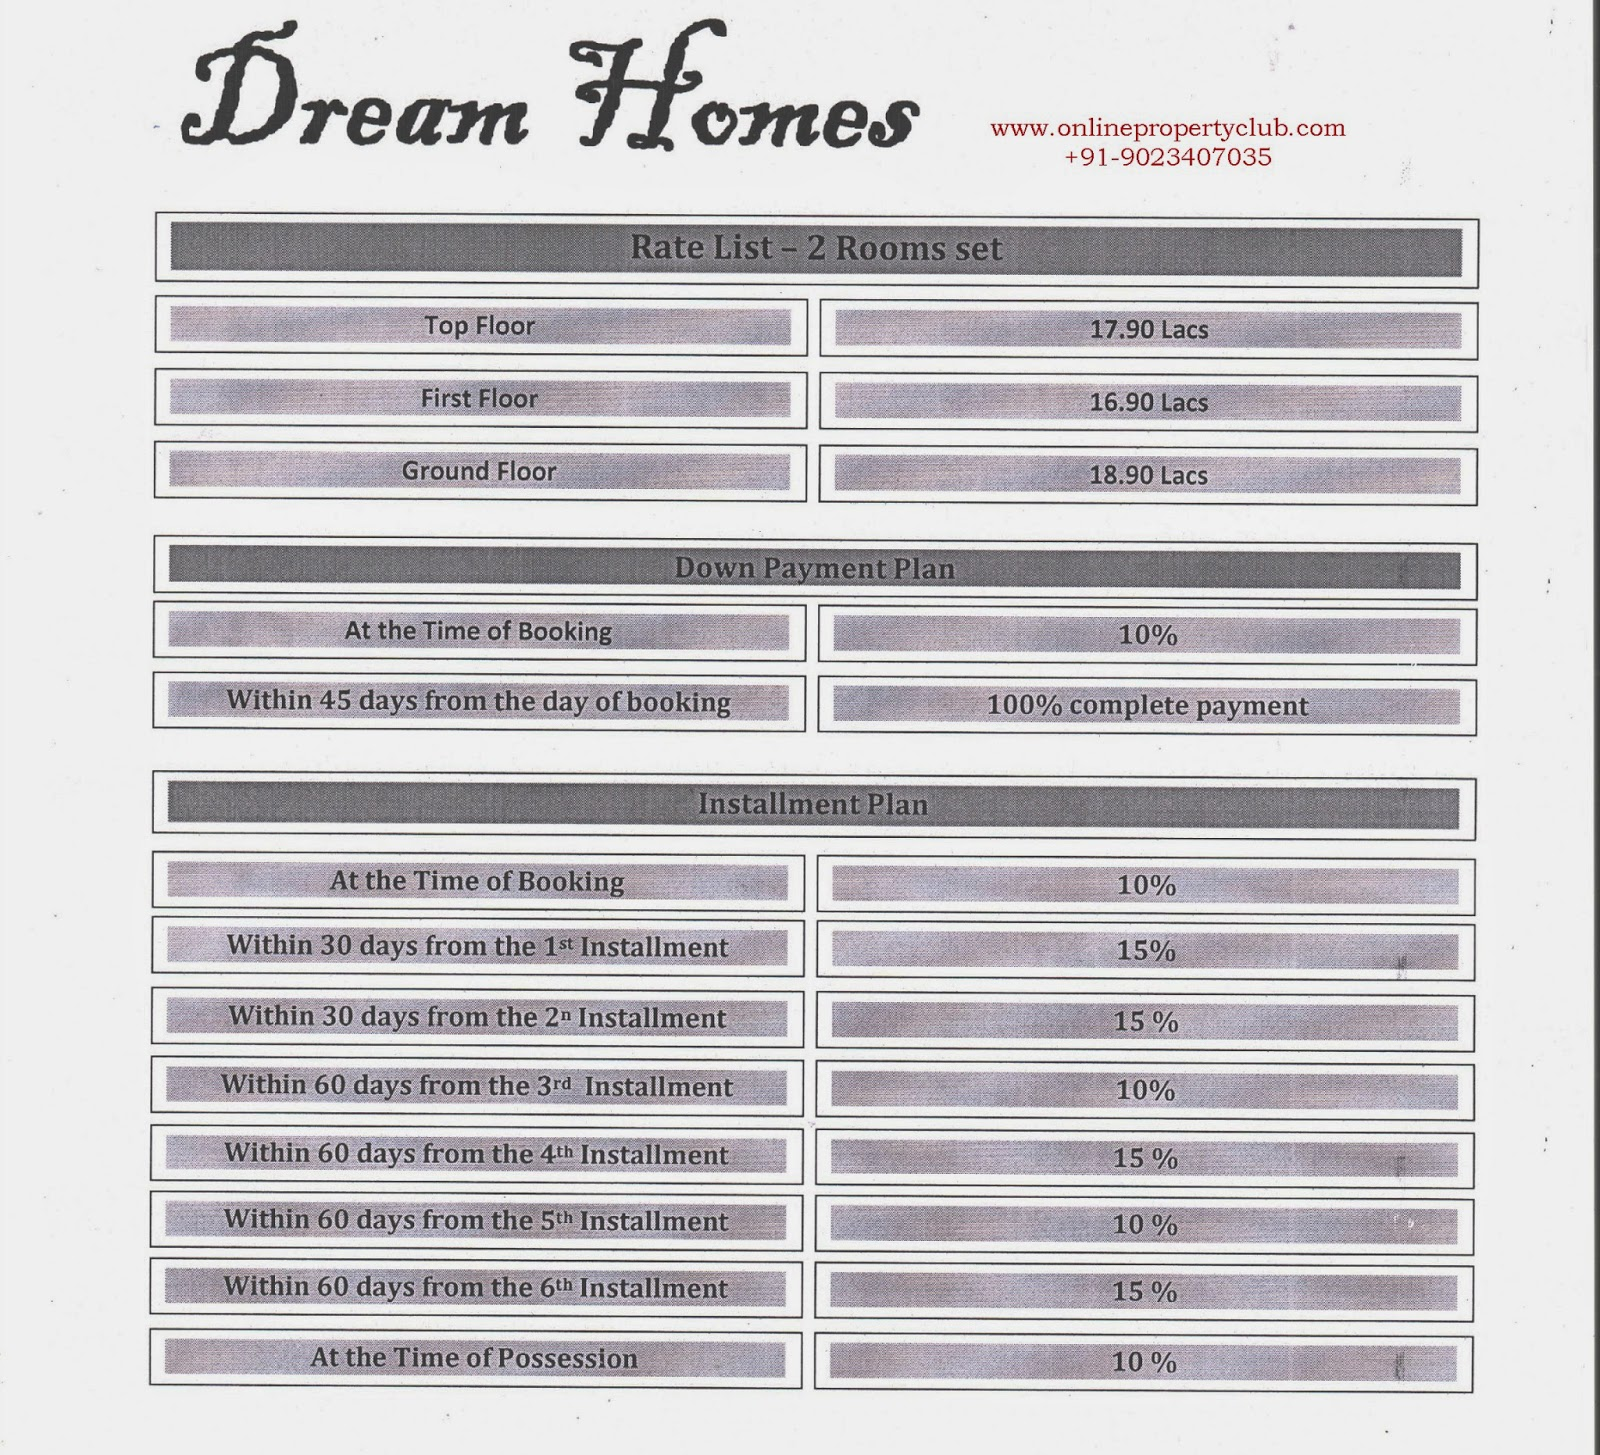 Dream homes zirakpur